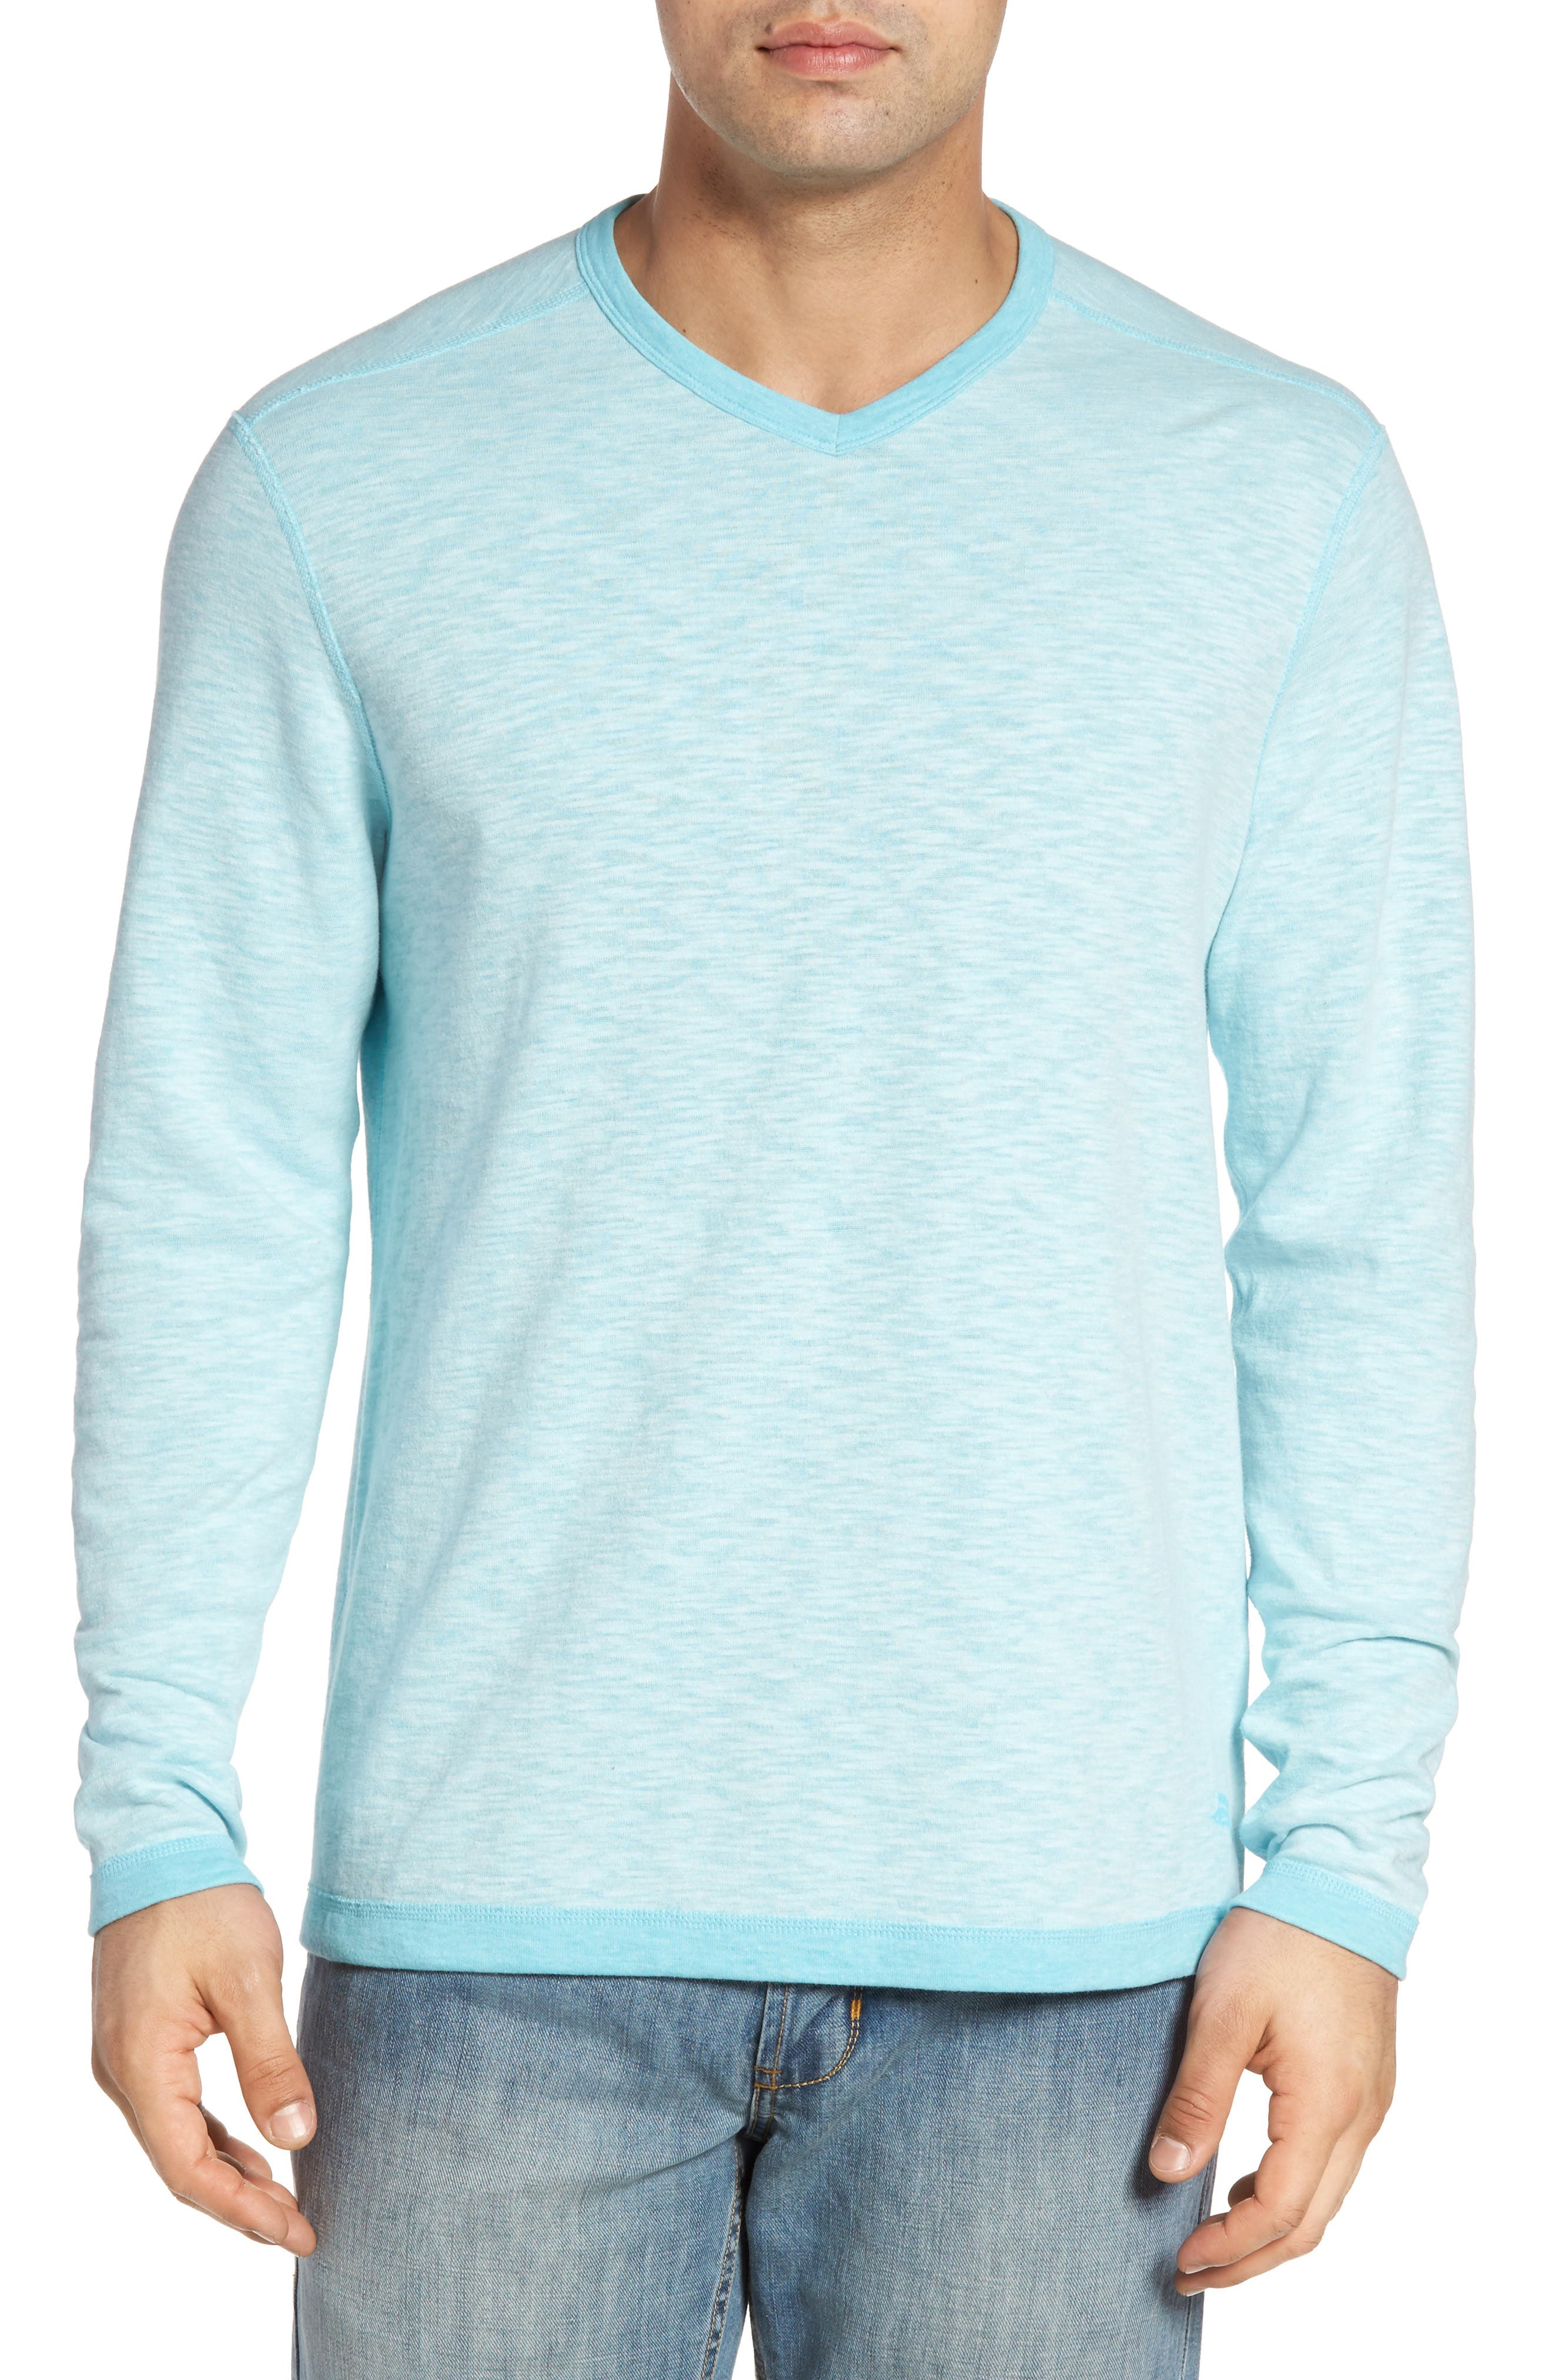 Alternate Image 1 Selected - Tommy Bahama Seaglass Reversible T-Shirt